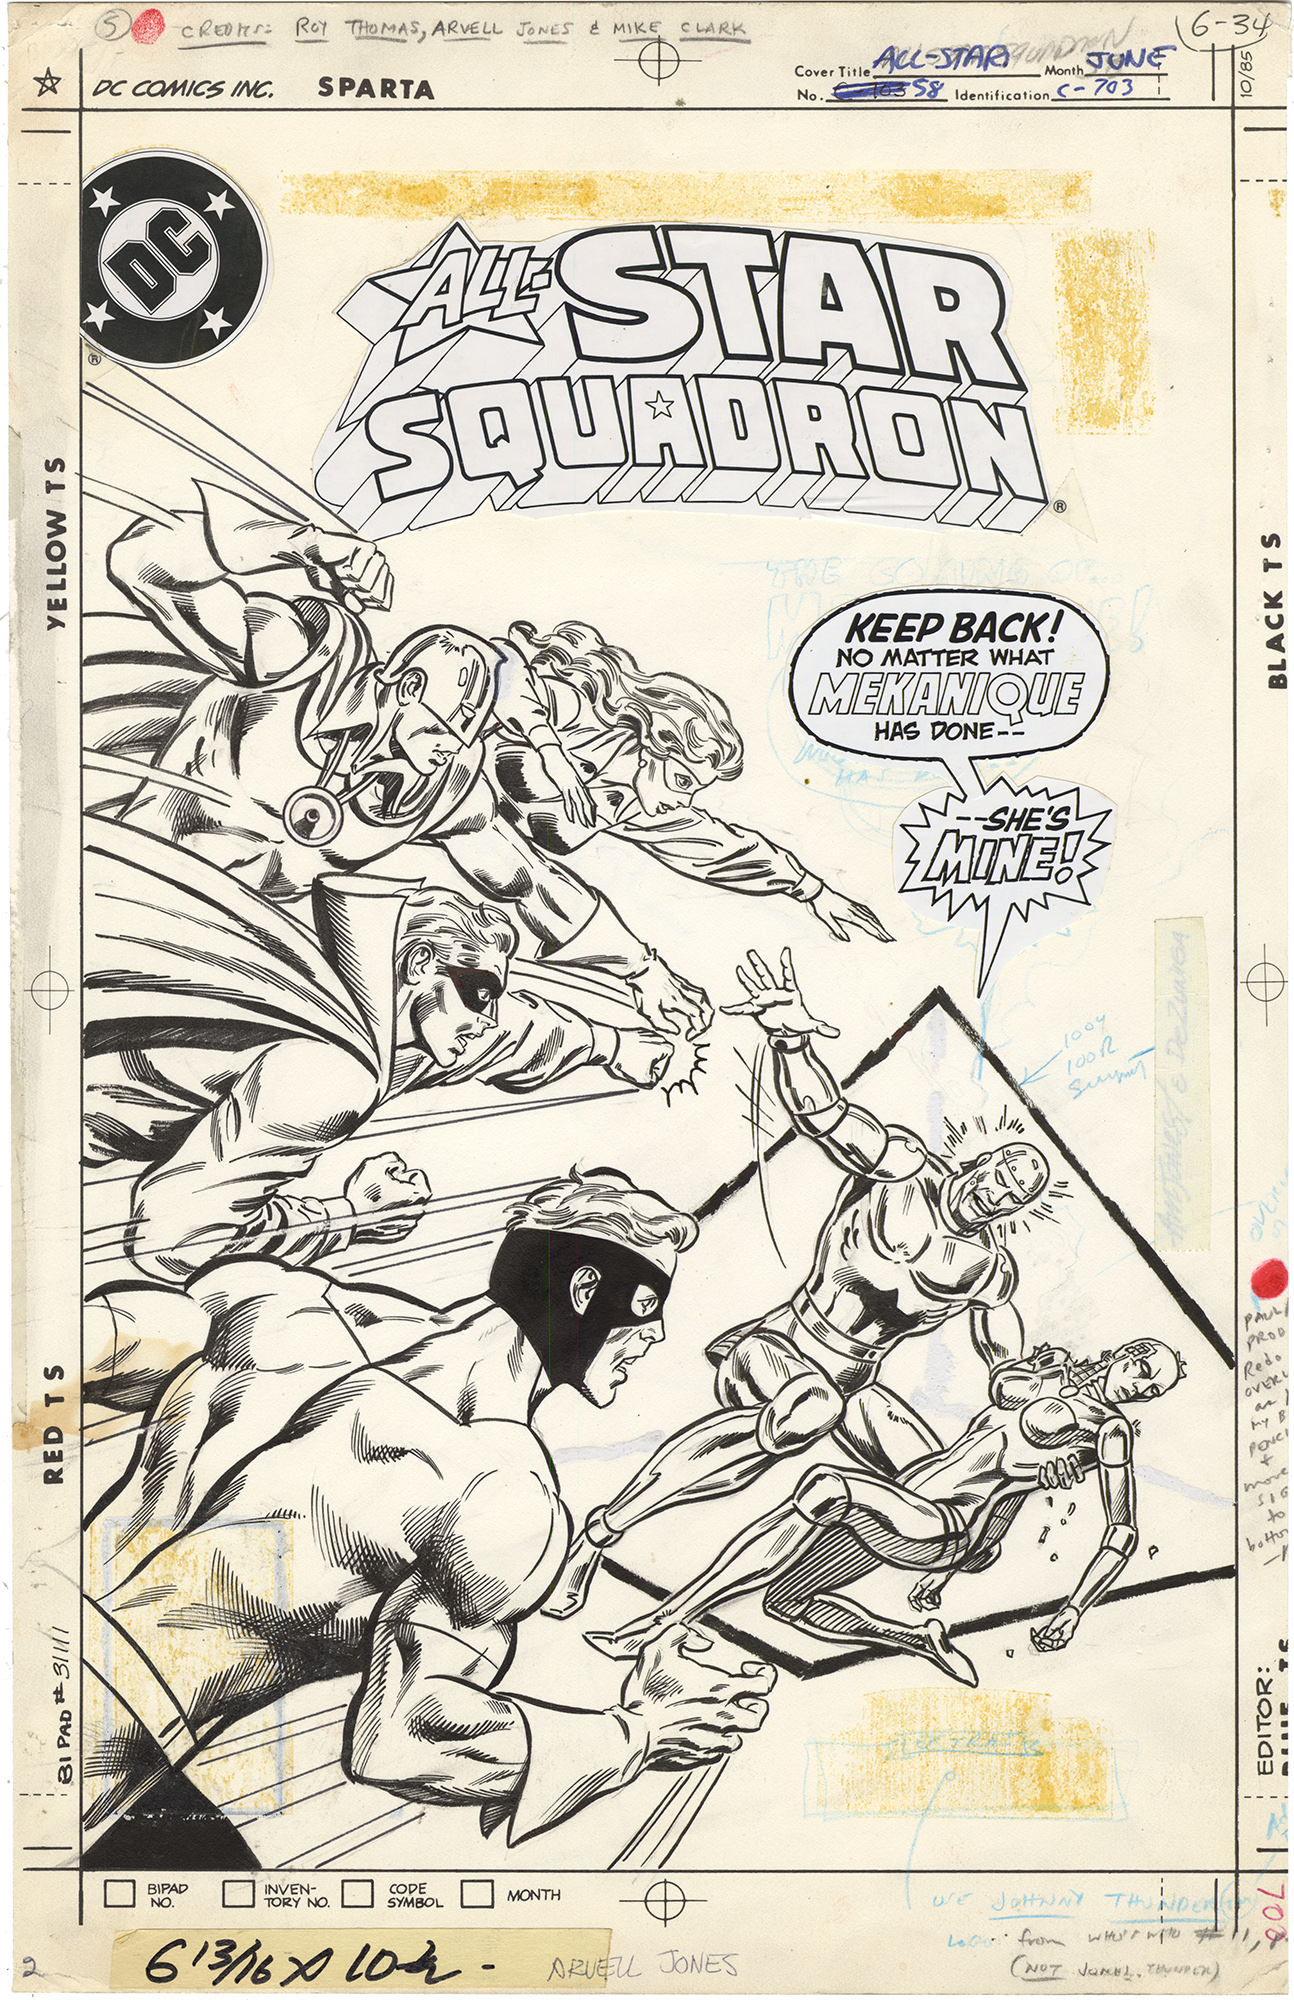 All-Star Squadron #58 Cover